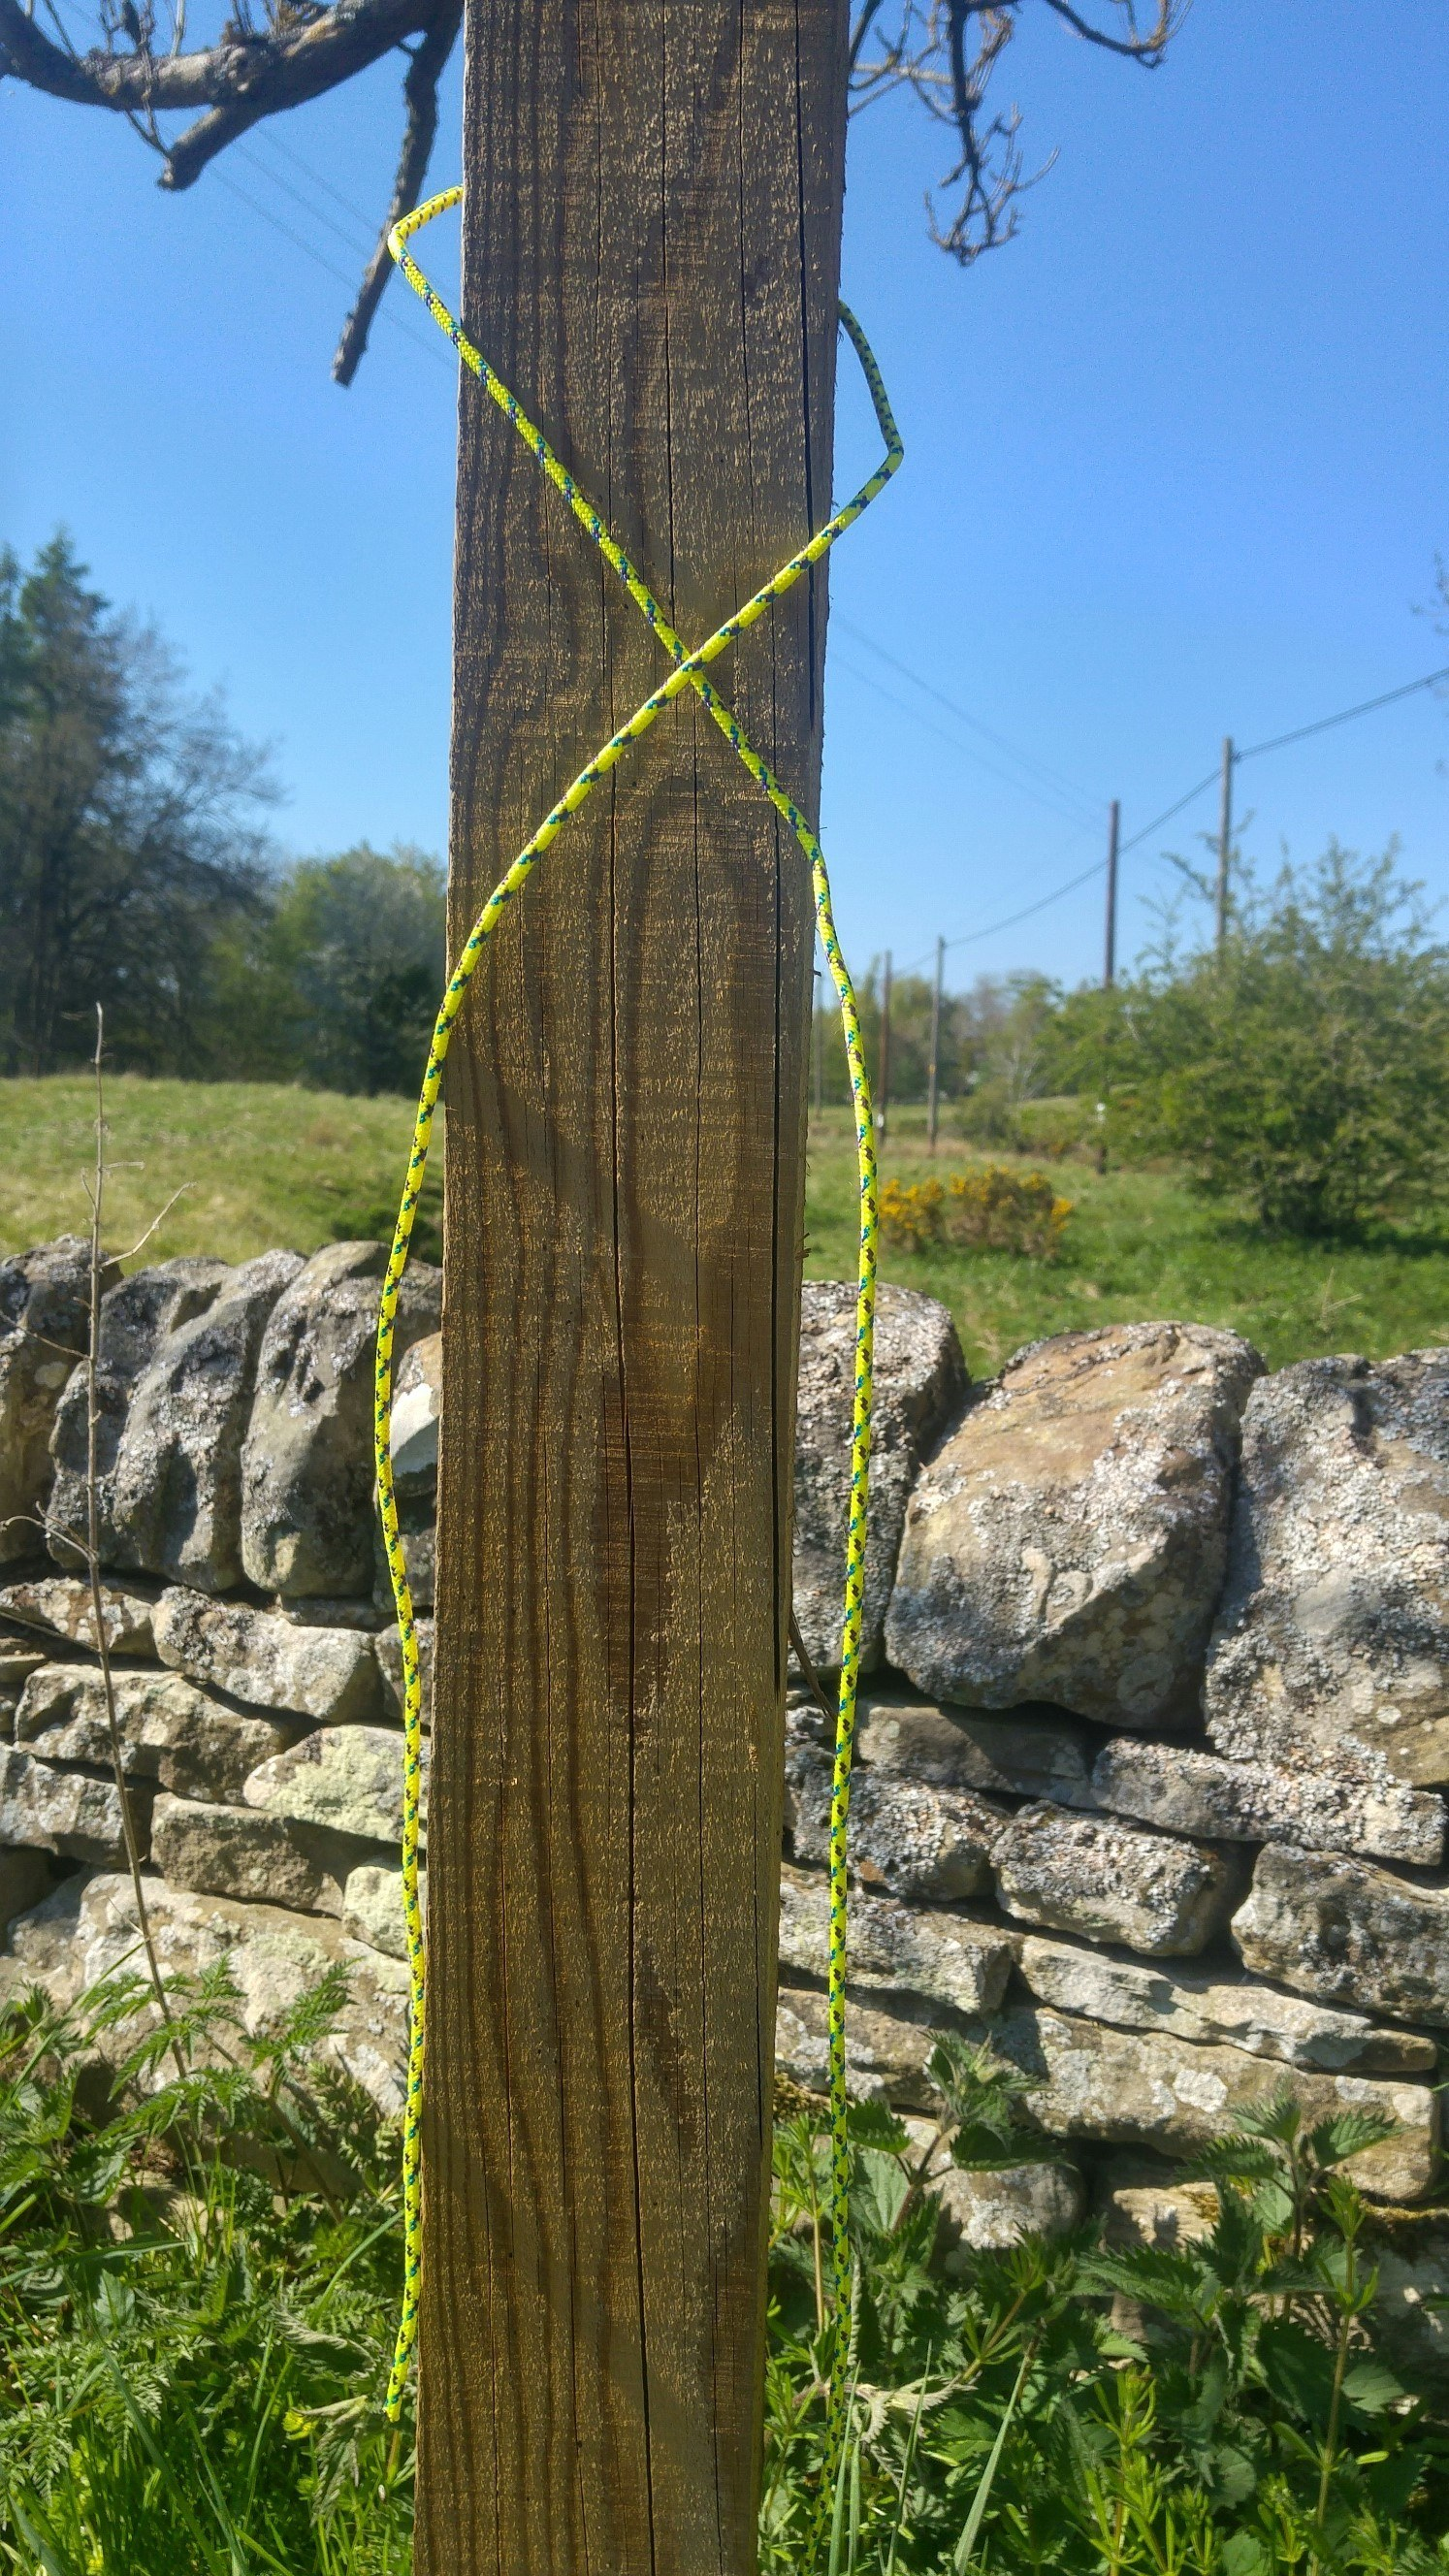 The start of a clove hitch knot around a fingerpost